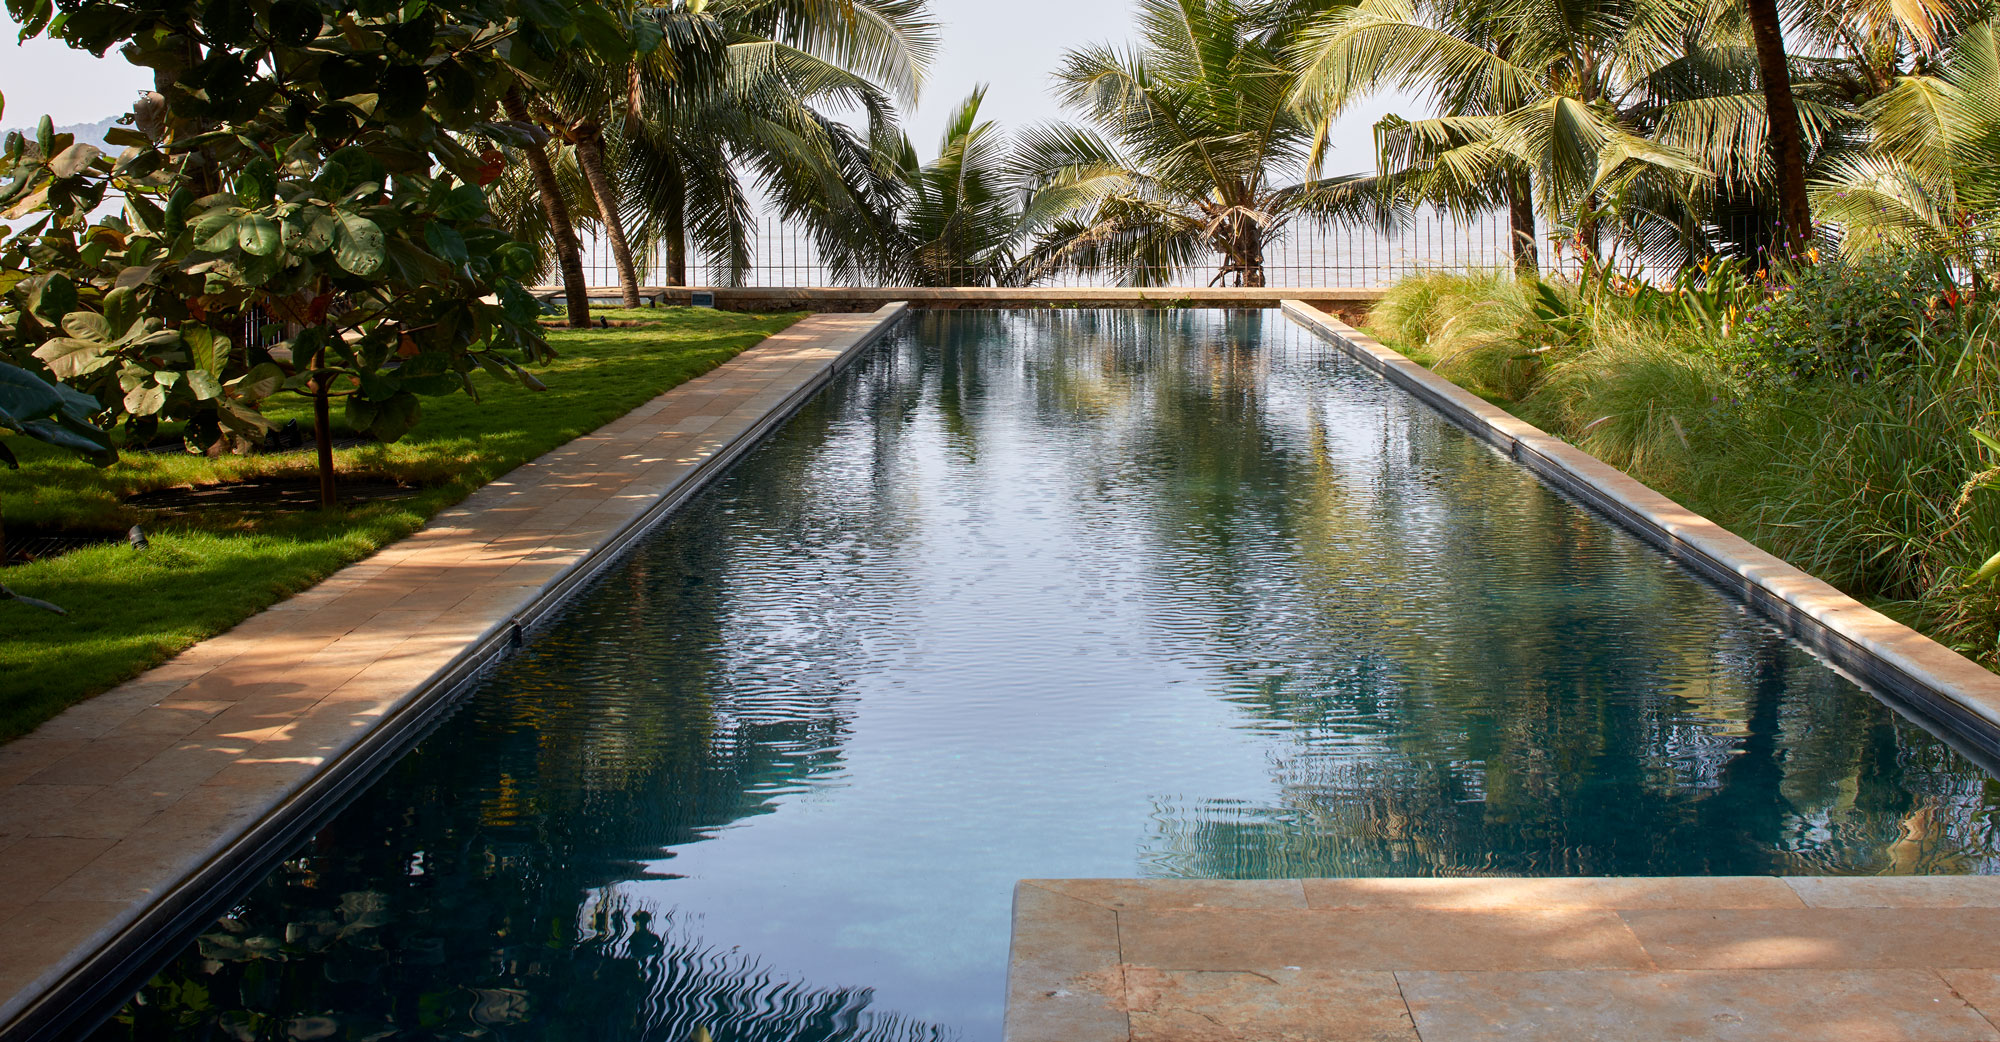 Swimming Pool at House in a Beach Garden